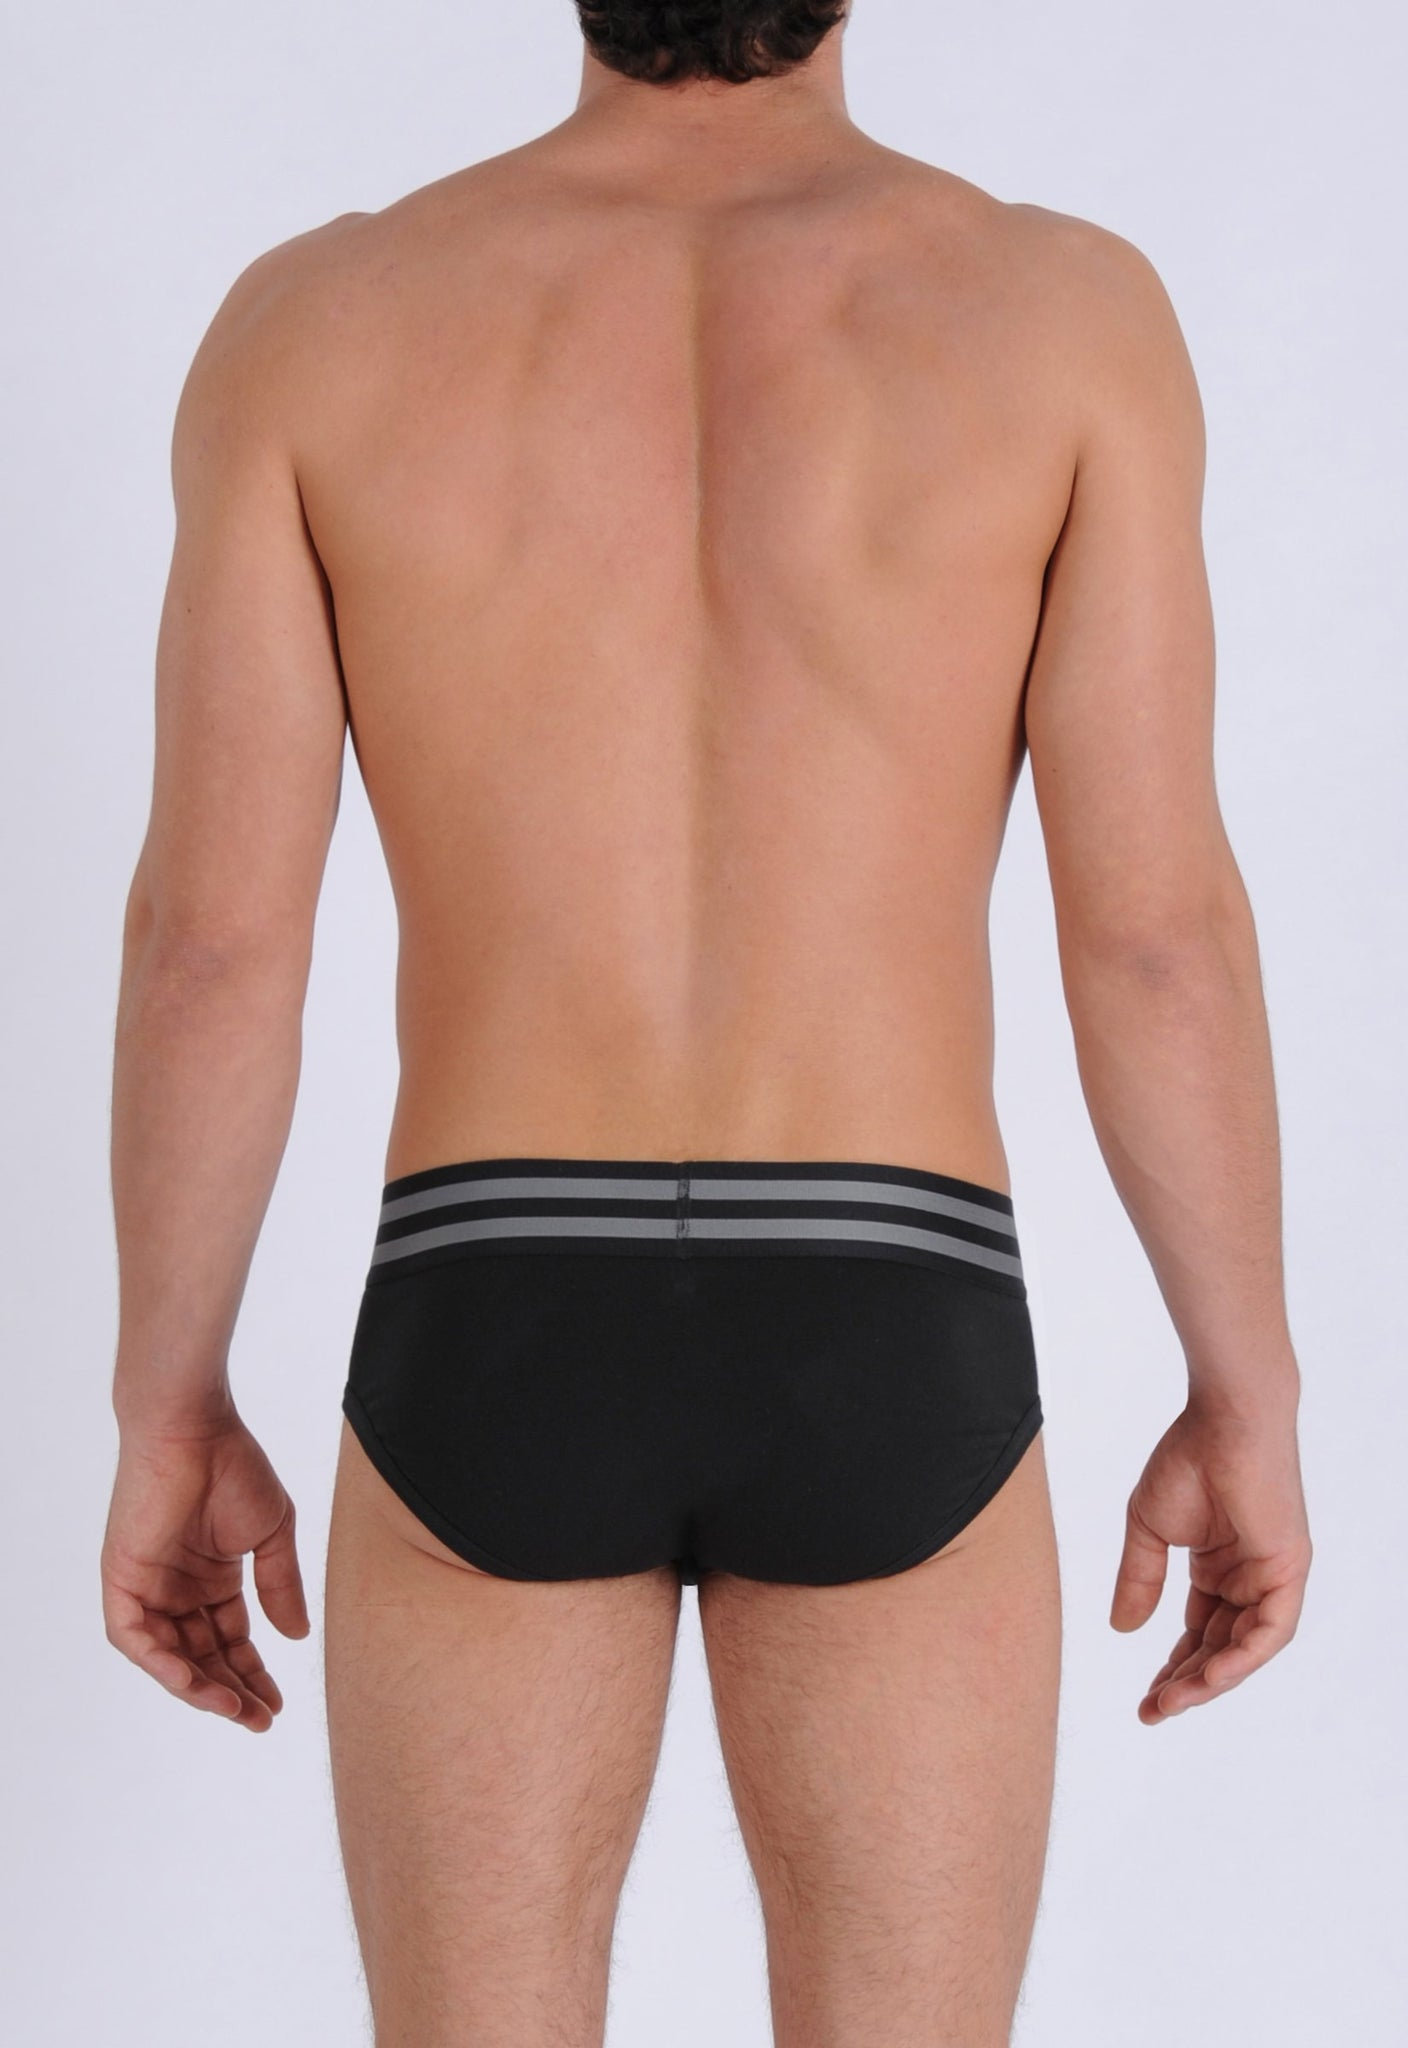 Ginch Gonch Men's Signature Series Underwear - Low Rise Brief Black thick waistband back